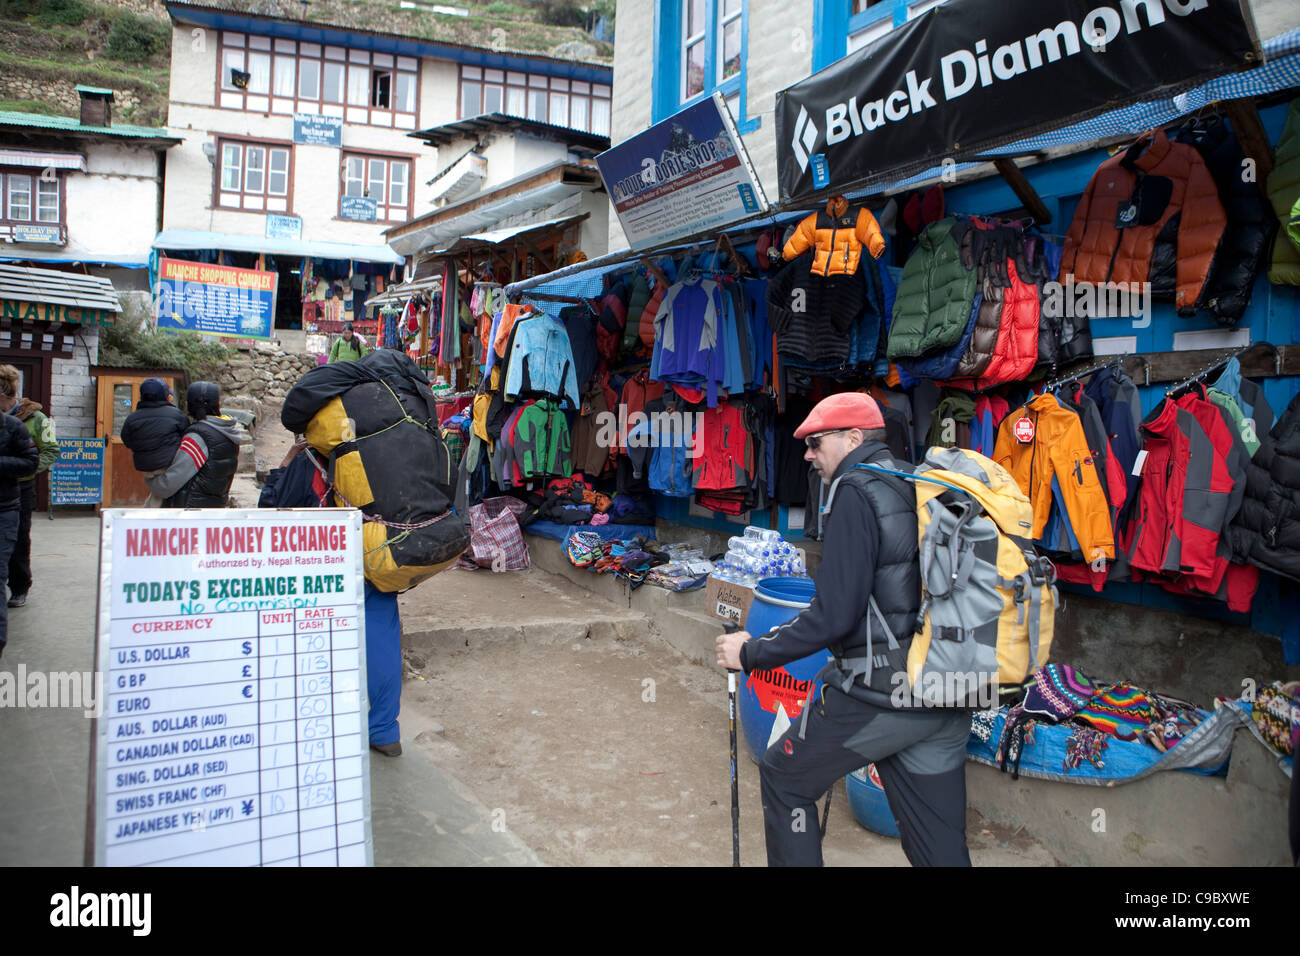 October 2009 Everest Base Camp Trek - Shop Namche Bazaar - general street scenes - Stock Image